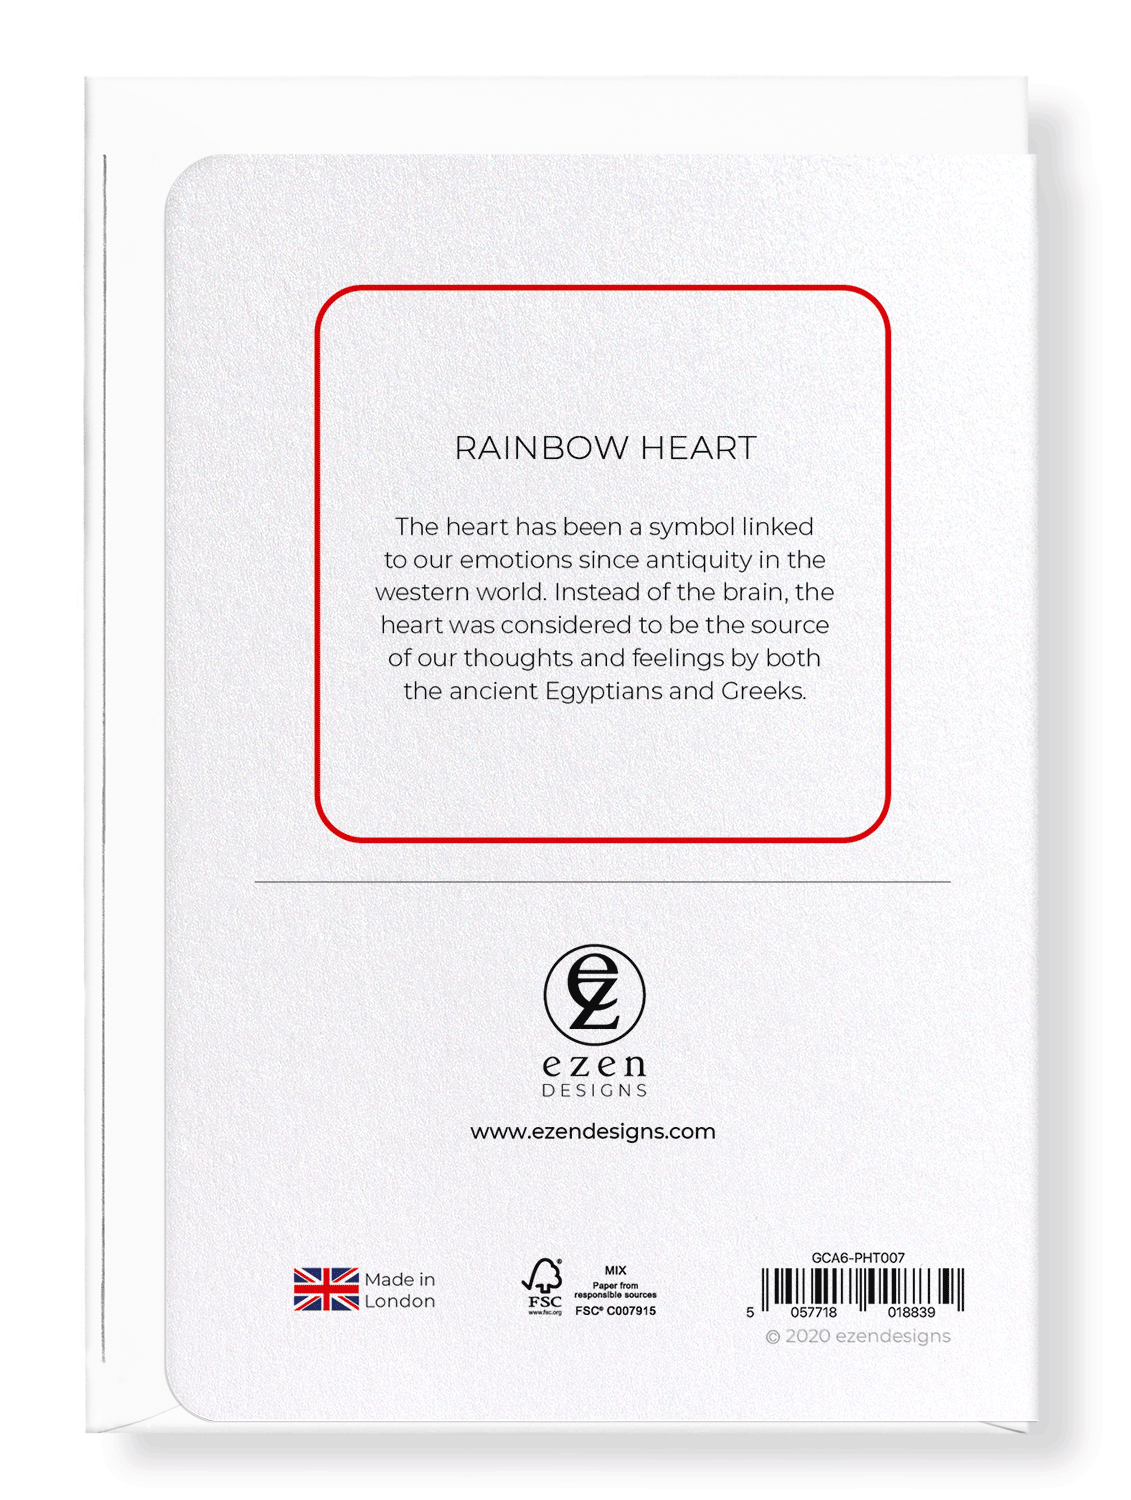 Ezen Designs - Rainbow heart - Greeting Card - Back